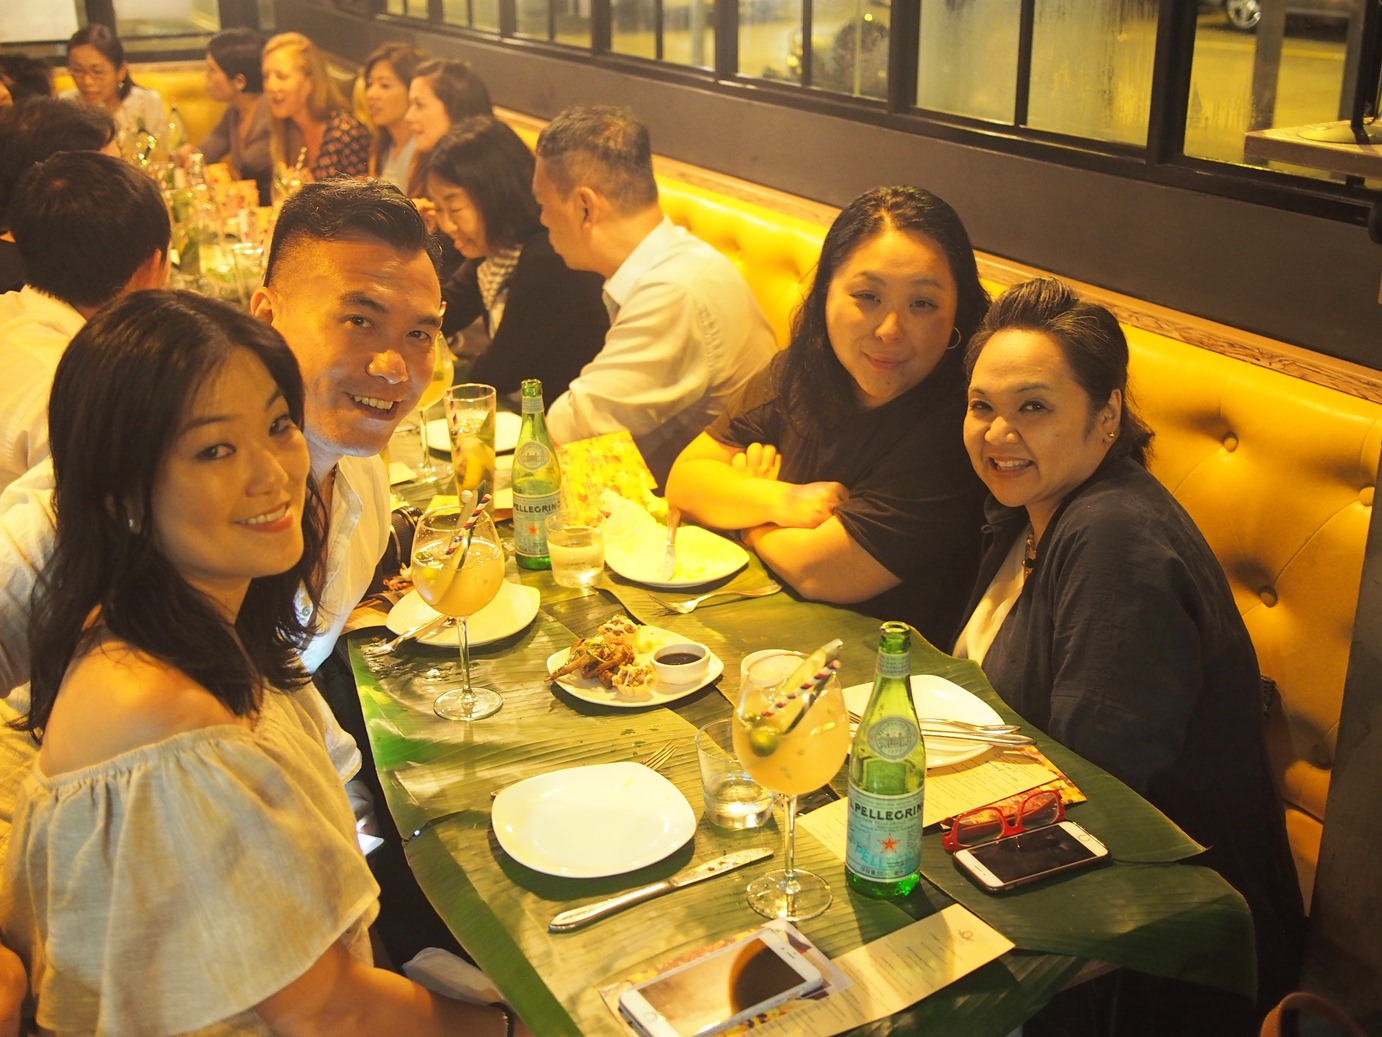 JJ Acuna of The Wanderlister, Sook's Mina Park, Louise Wong, Alex Seno